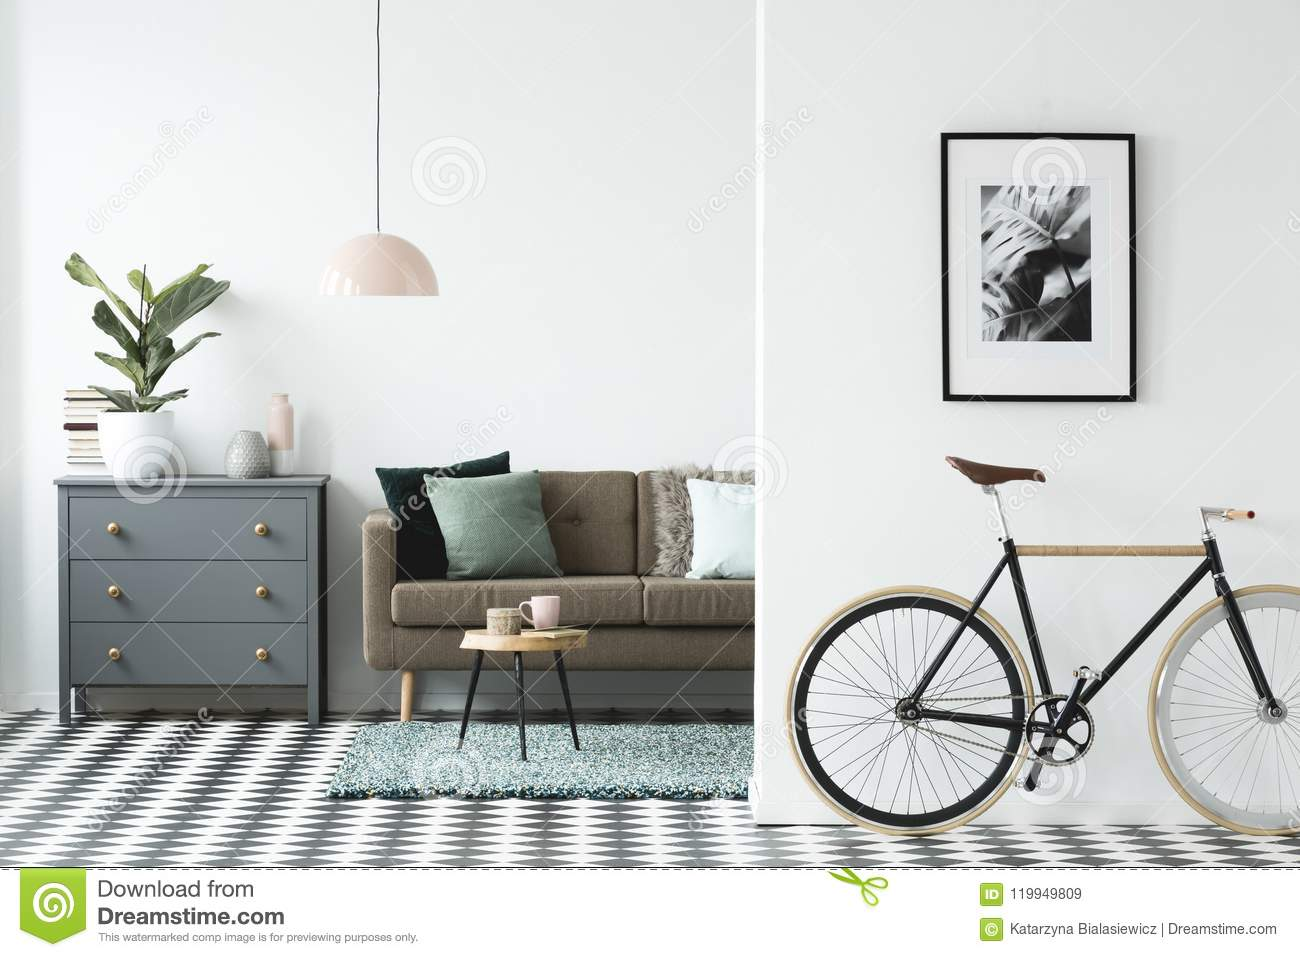 Modern Interieur Wit : Bike and poster on the wall in a modern living room interior wit